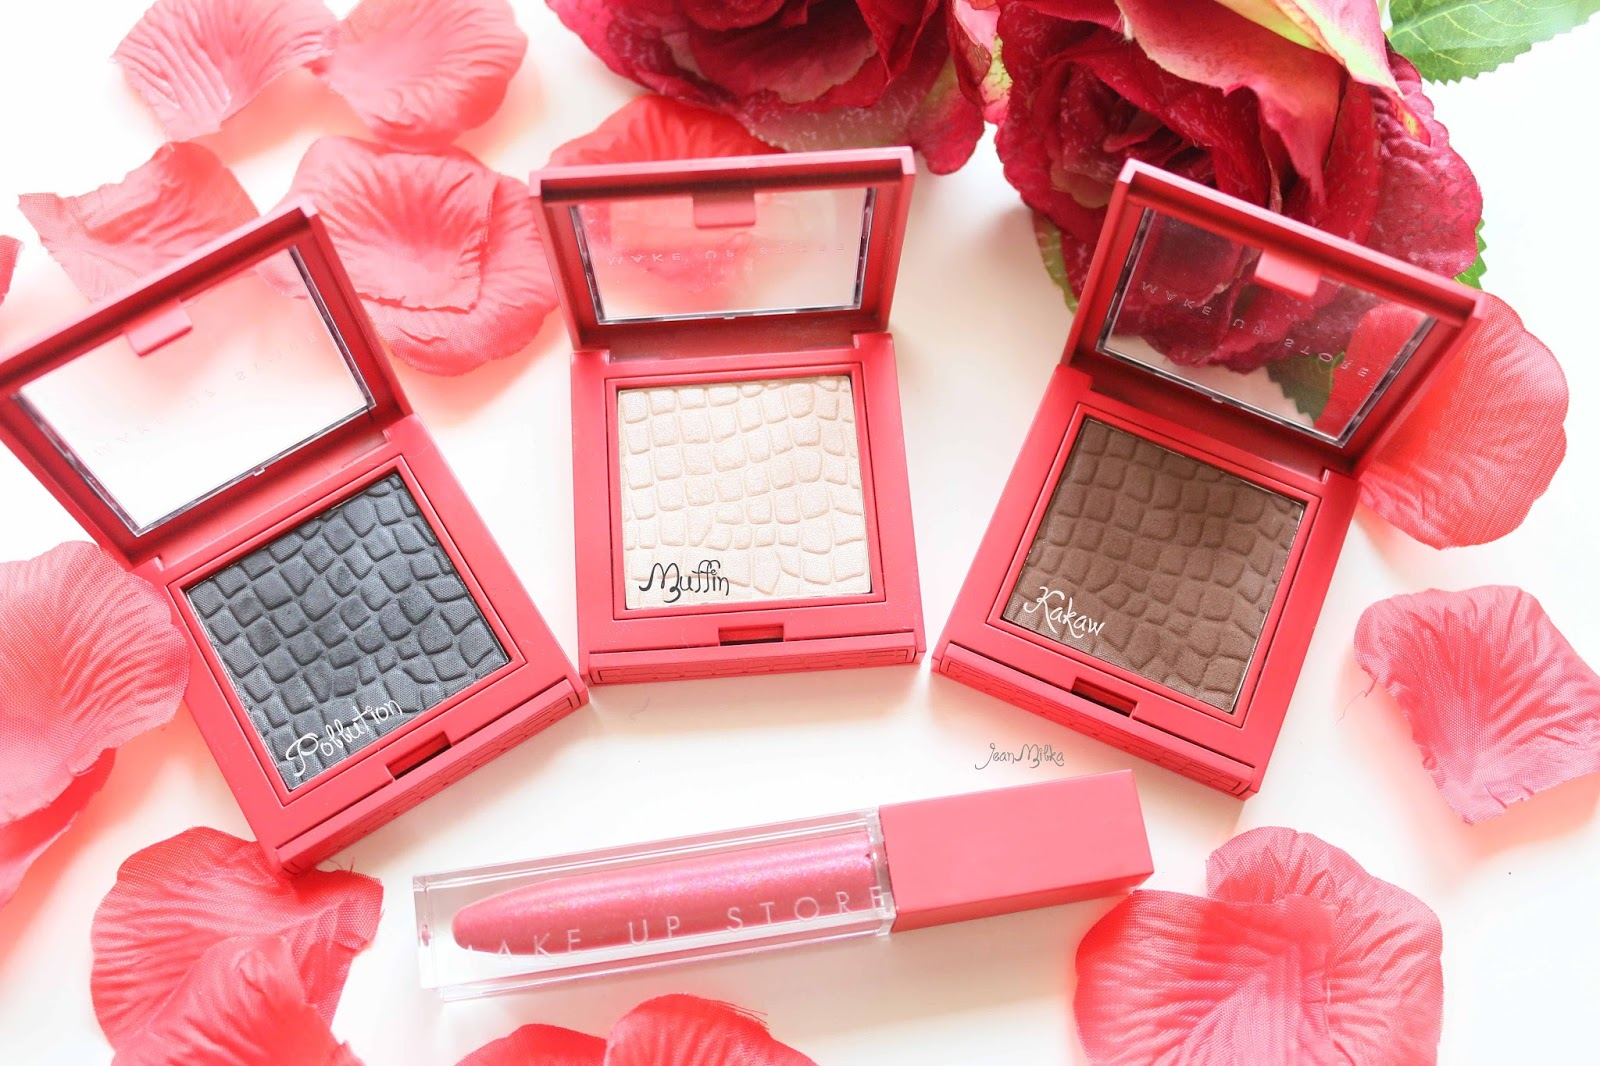 makeup, eye, eyeshadow, review, make up store, red, elegant, packaging, limited edition